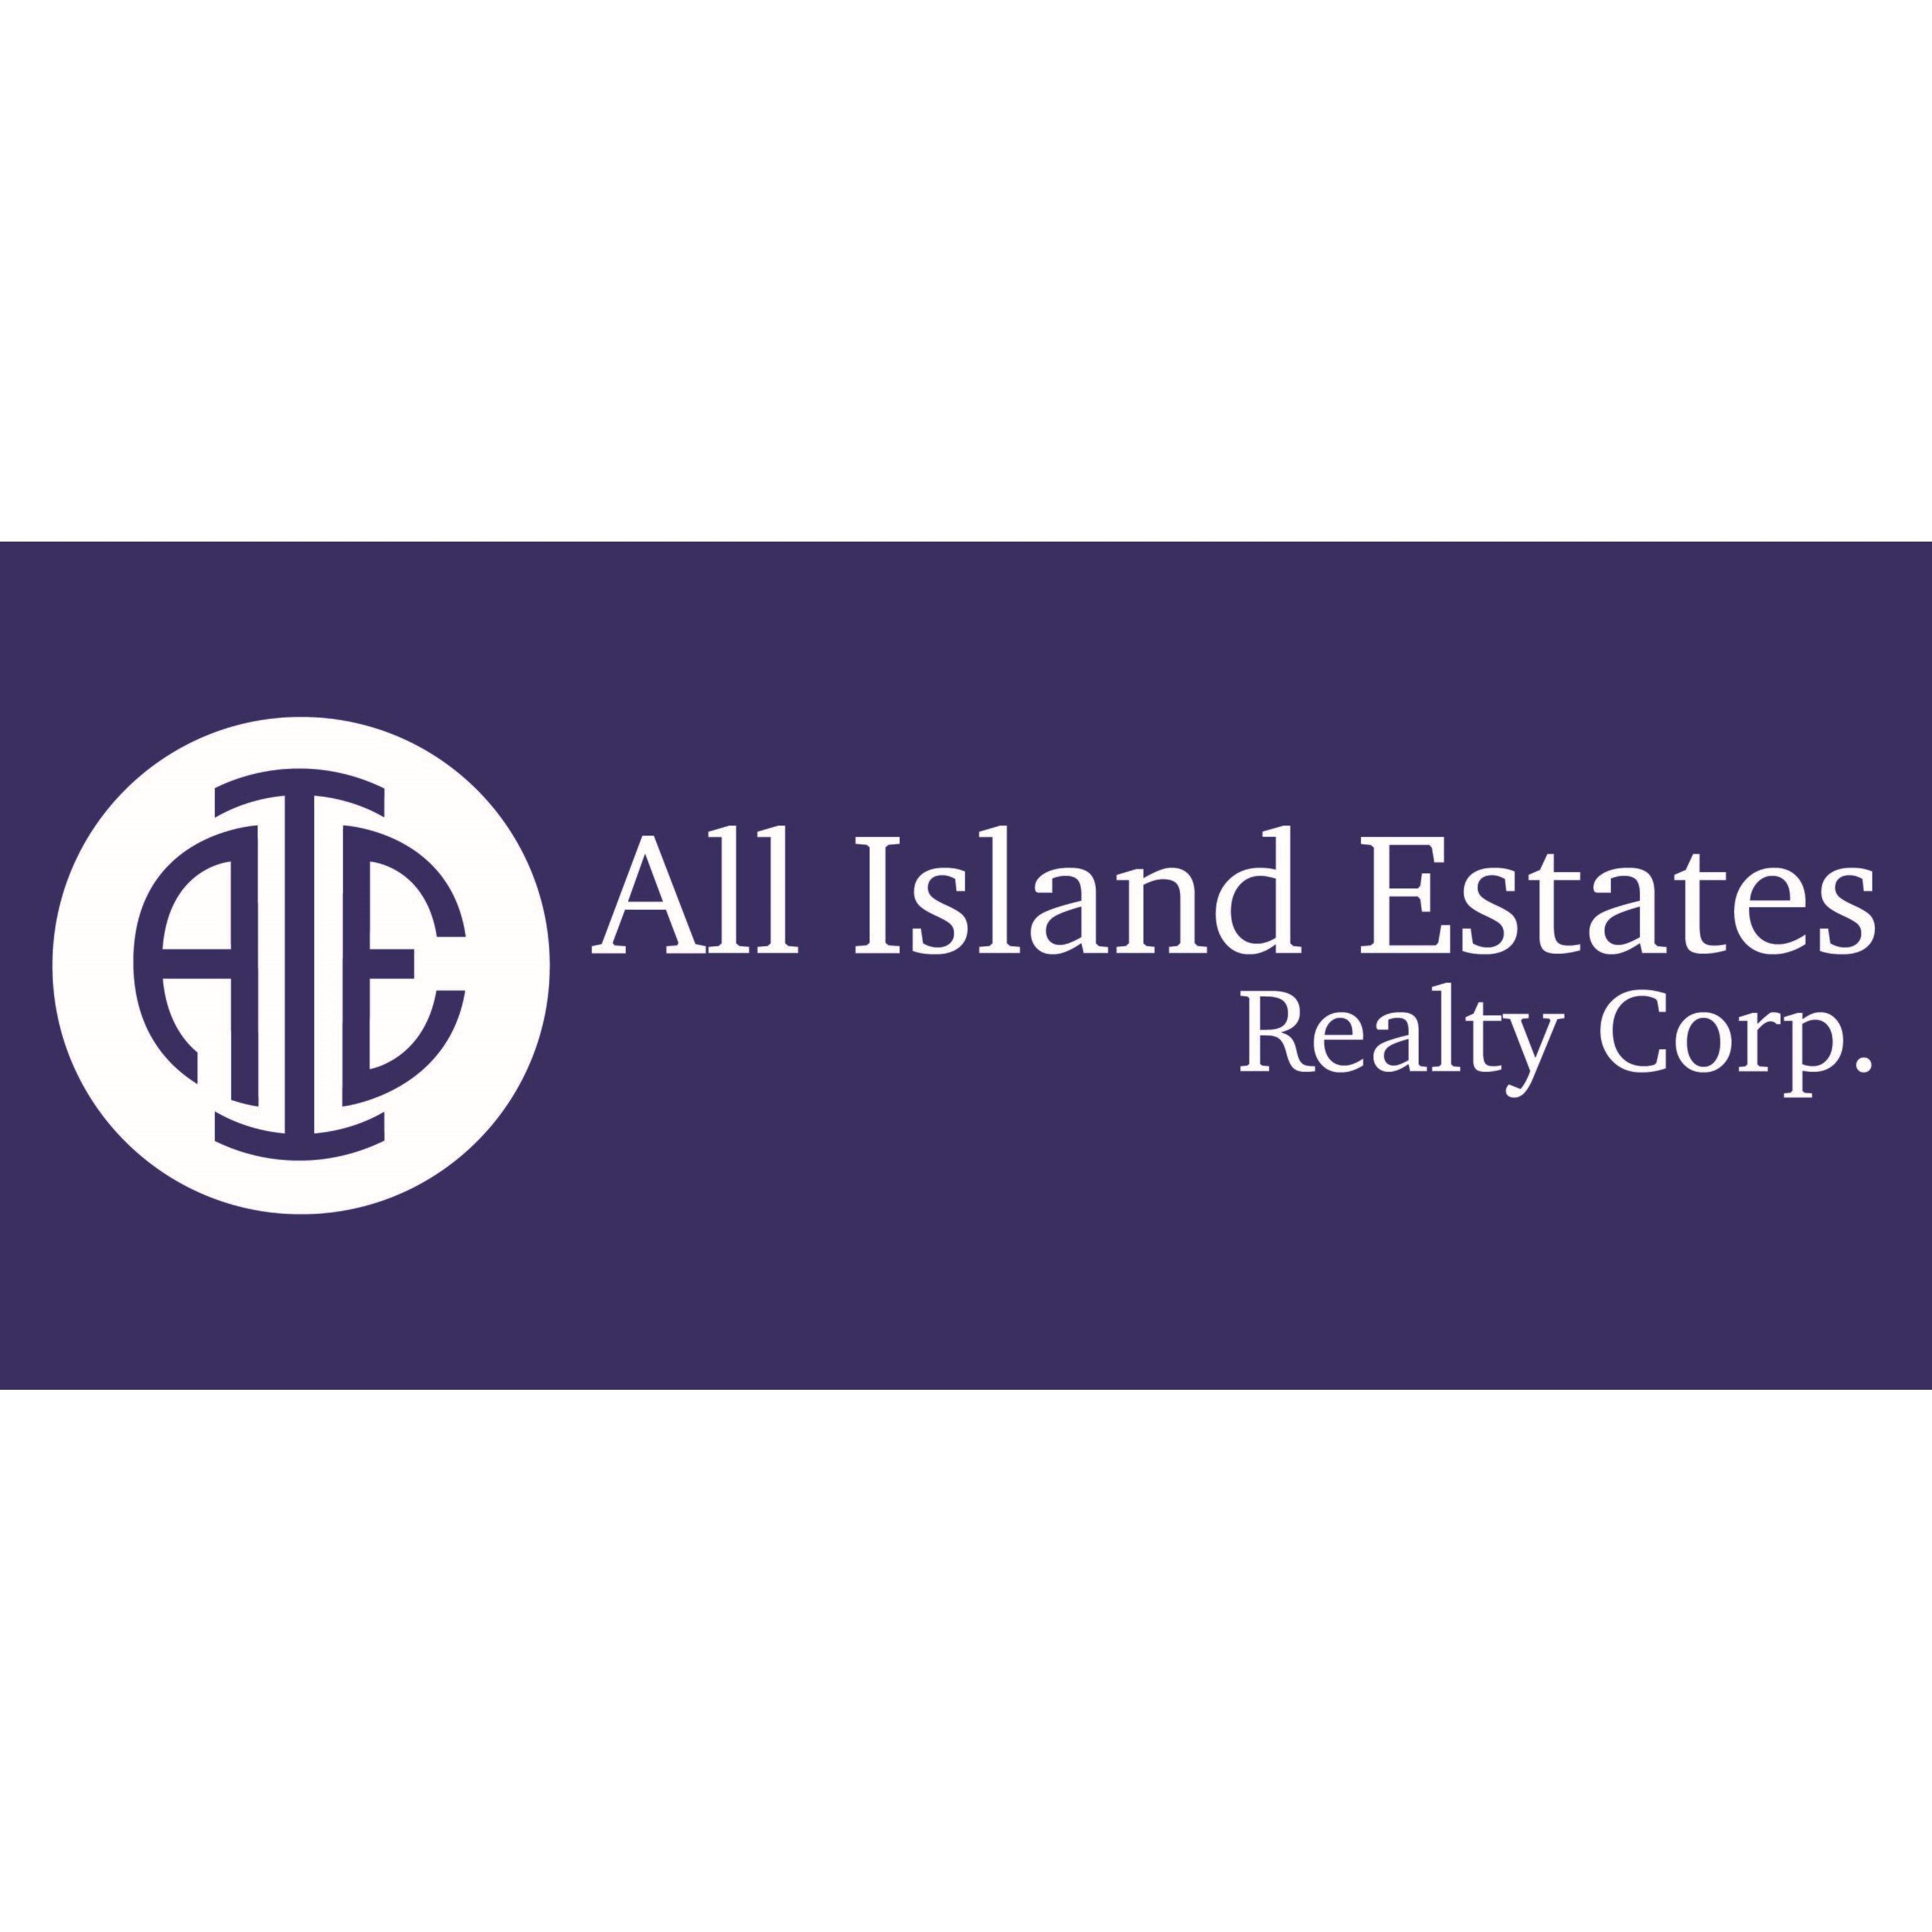 All Island Estates Realty Corp.